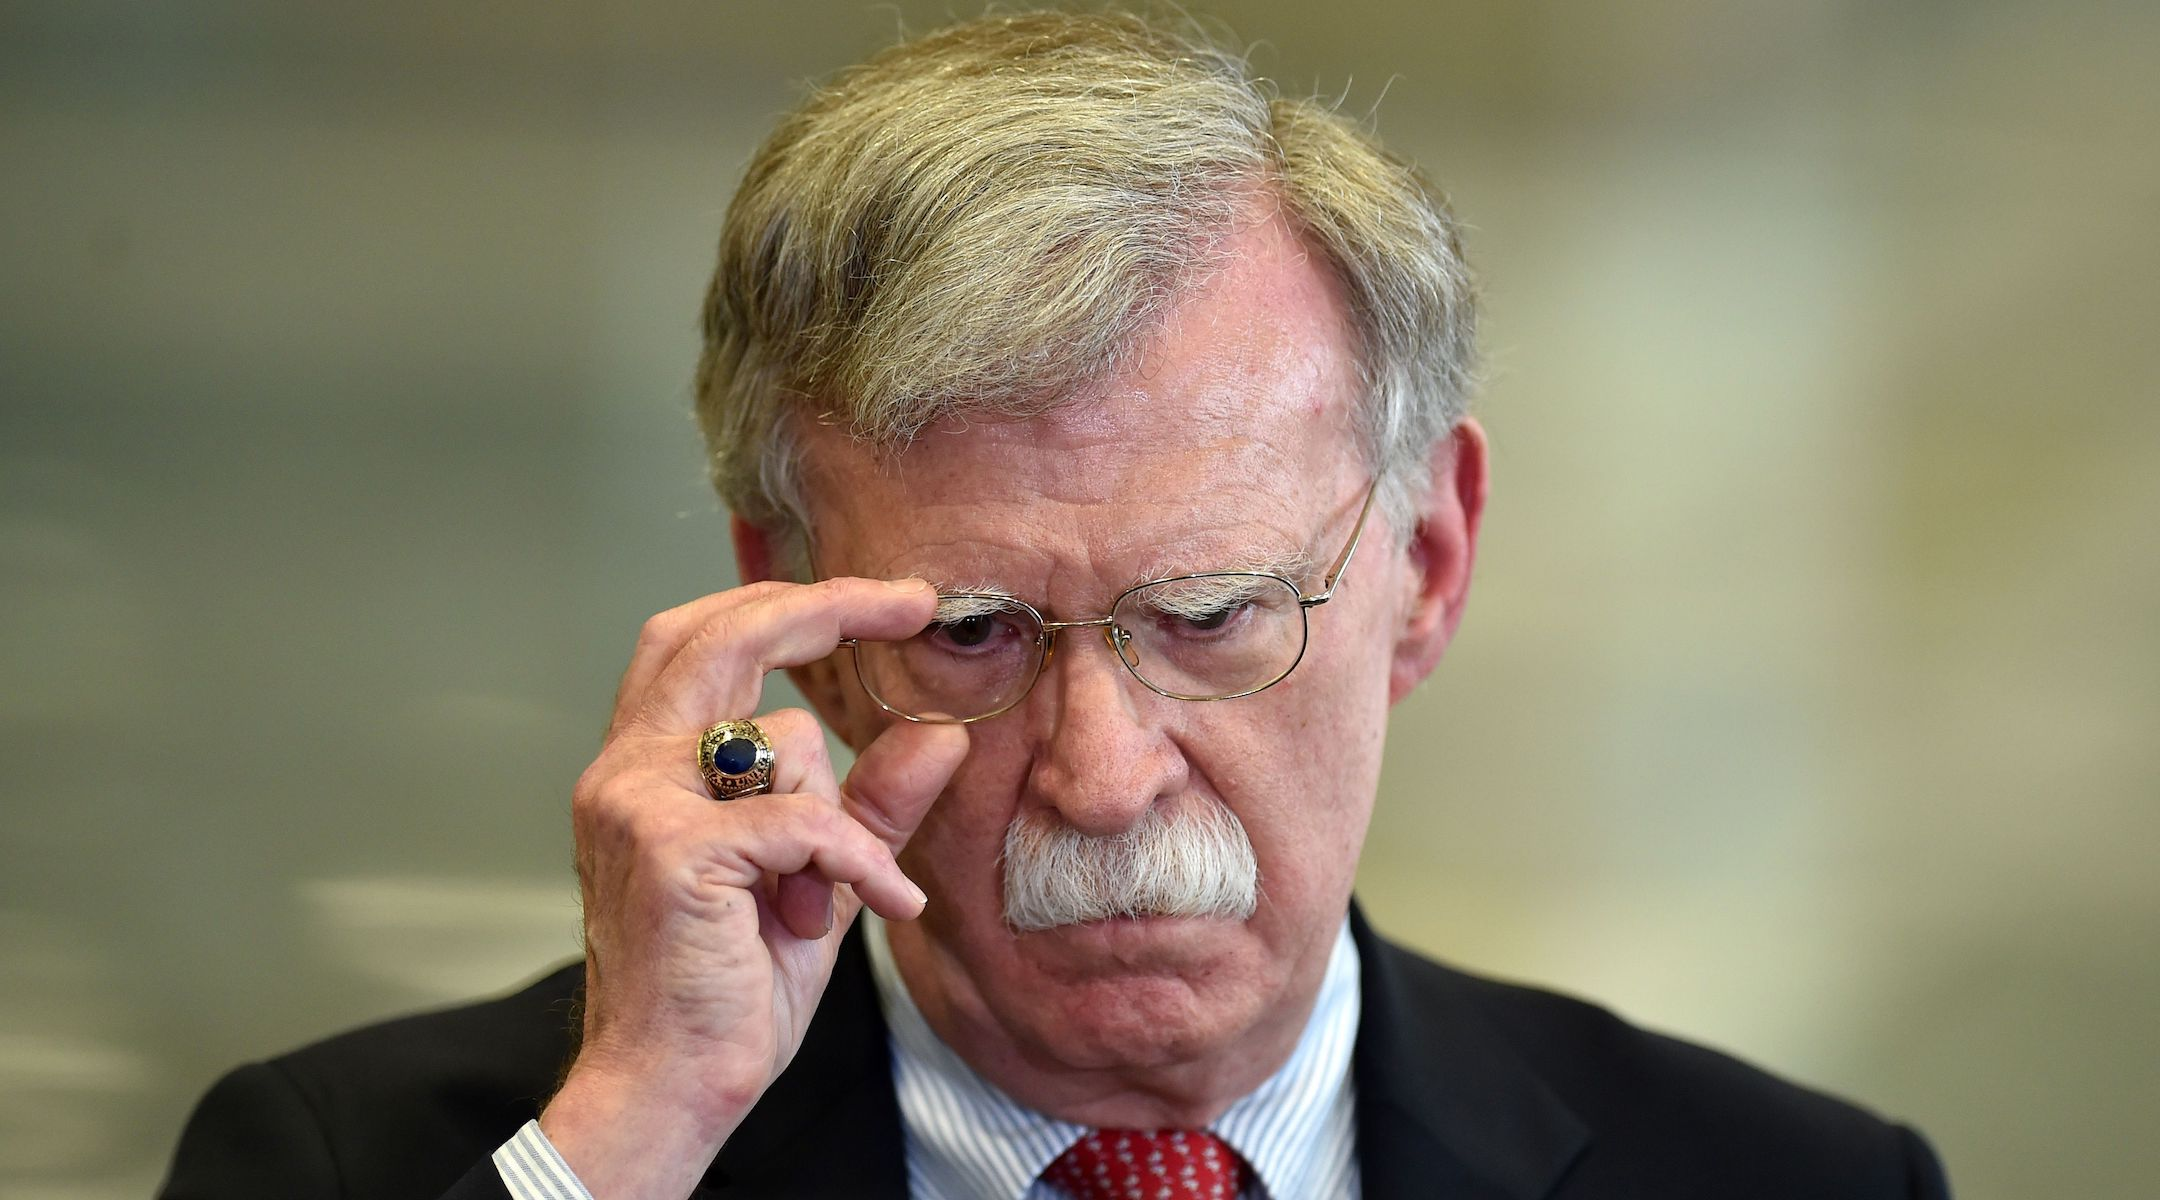 National Security Advisor John Bolton answers journalists' questions after his meeting with Belarus' president in Minsk, Aug. 29, 2019. (Sergei Gapon/AFP/Getty Images)